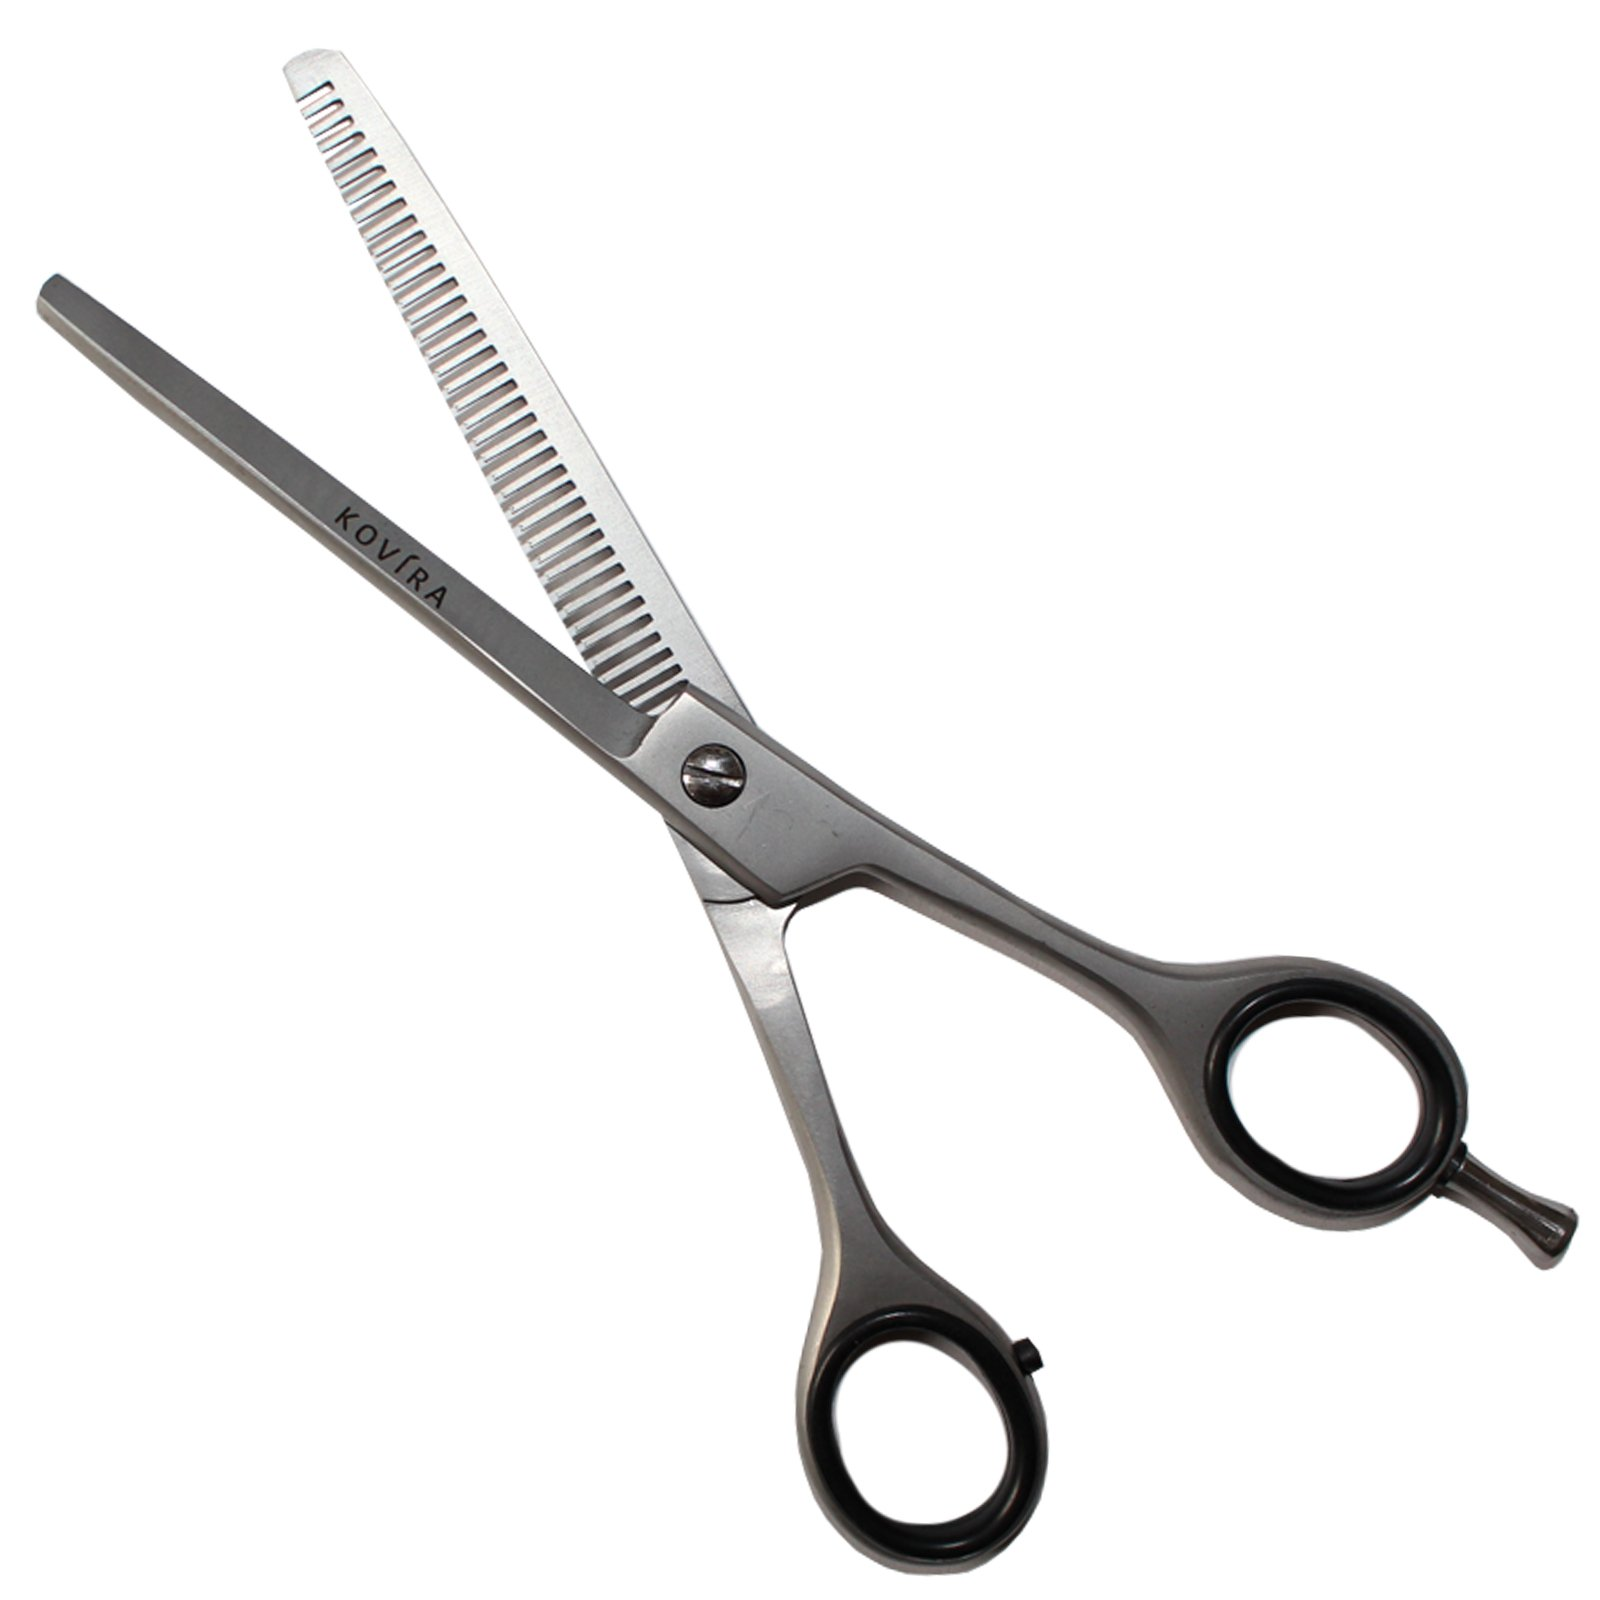 Professional Hairdressing Scissors/Thinning Shears/Hair scissors - Barber Hair Cutting Scissors for Thinning/Texturing Scissors - Razor Sharp Japanese Stainless Steel & Fine Adjustment Tension Screw by Kovira (Image #4)